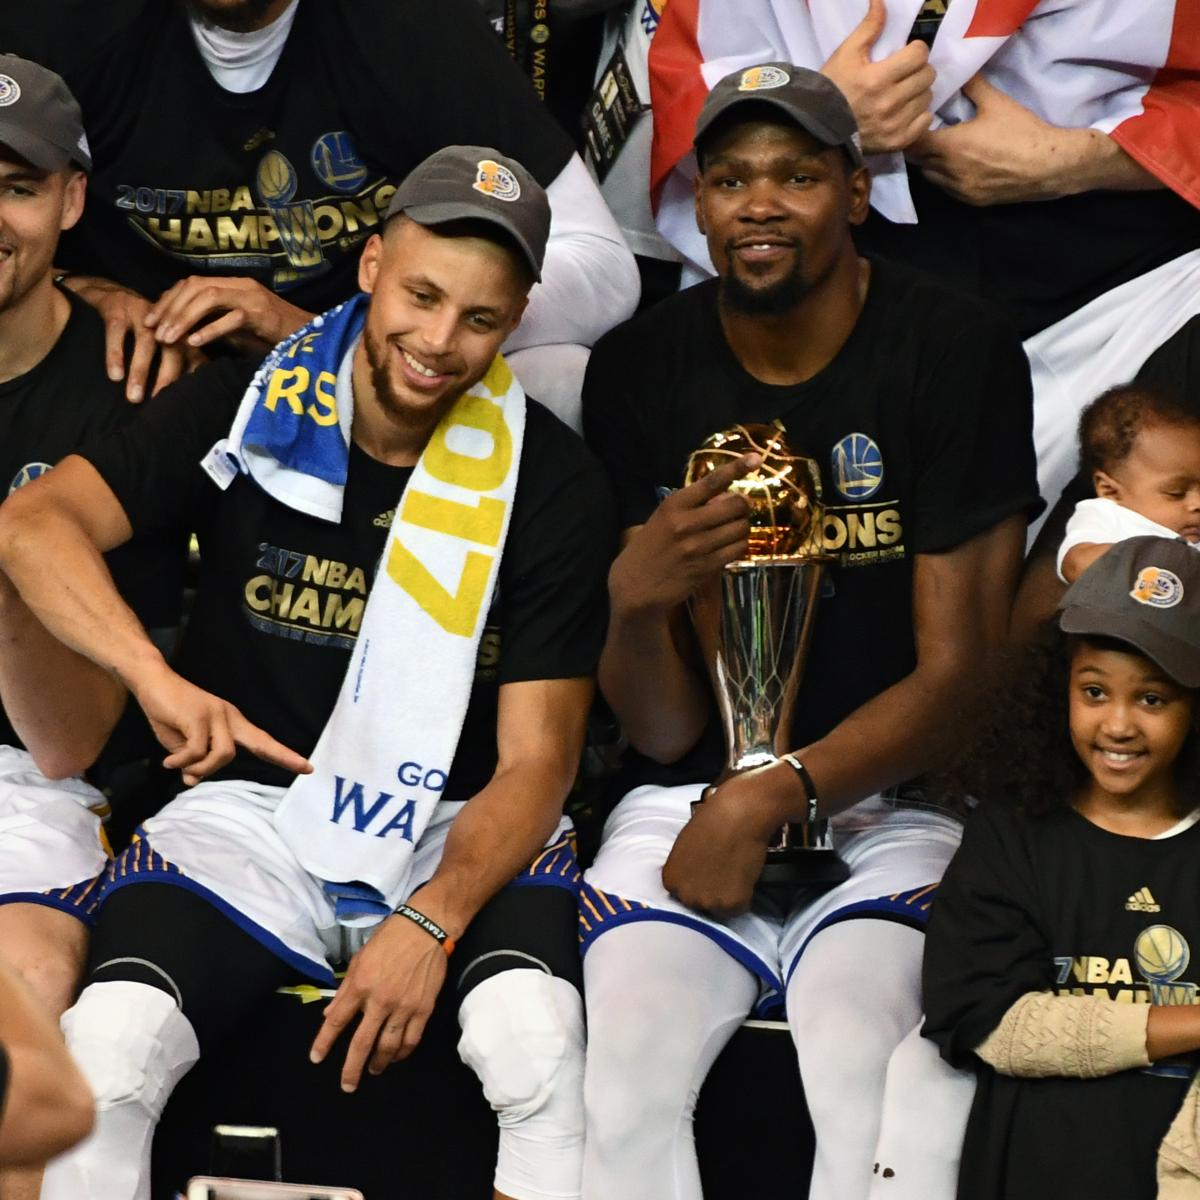 Houston Vs Warriors Full Game Highlights: Warriors 2017-18 Schedule: Top Games, Championship Odds